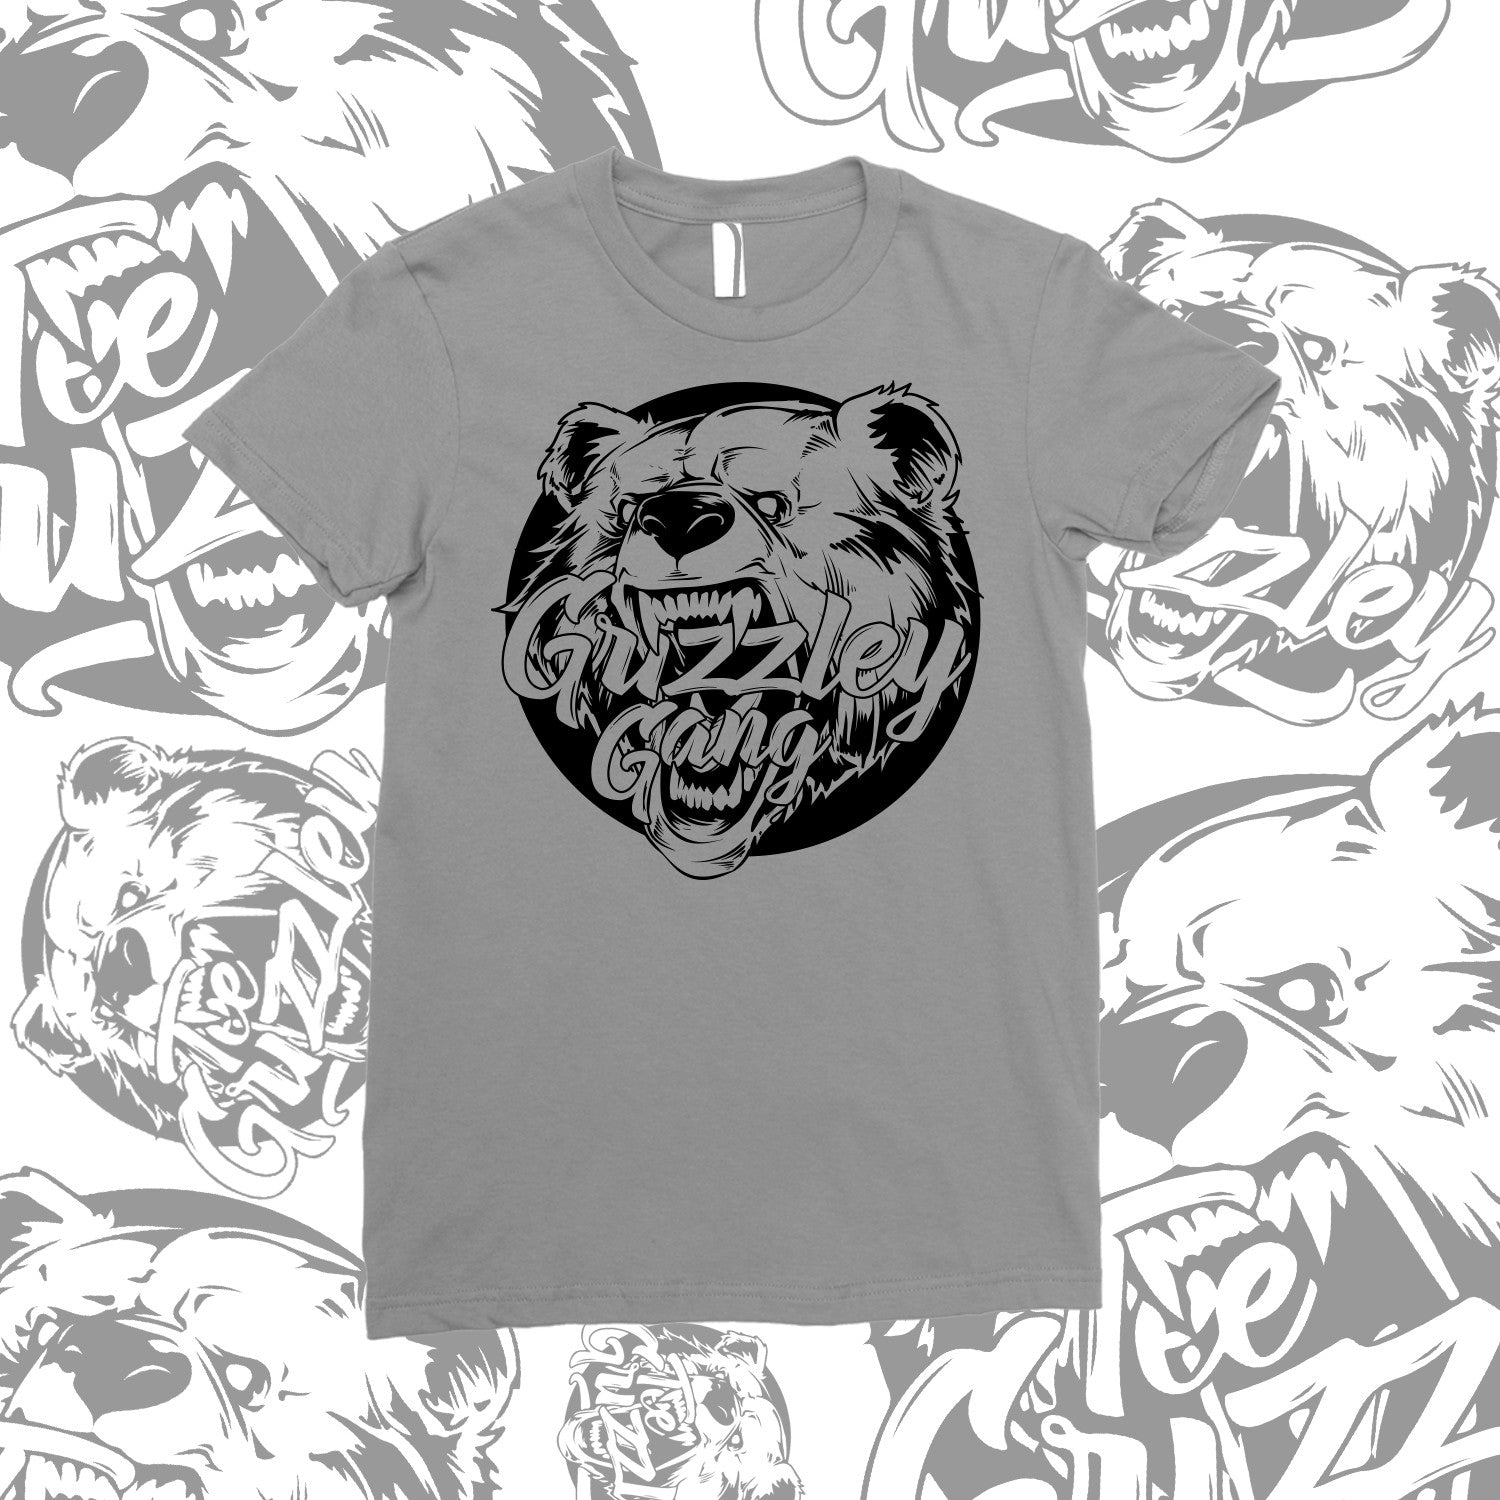 GRIZZLEY GANG T SHIRT- UNISEX